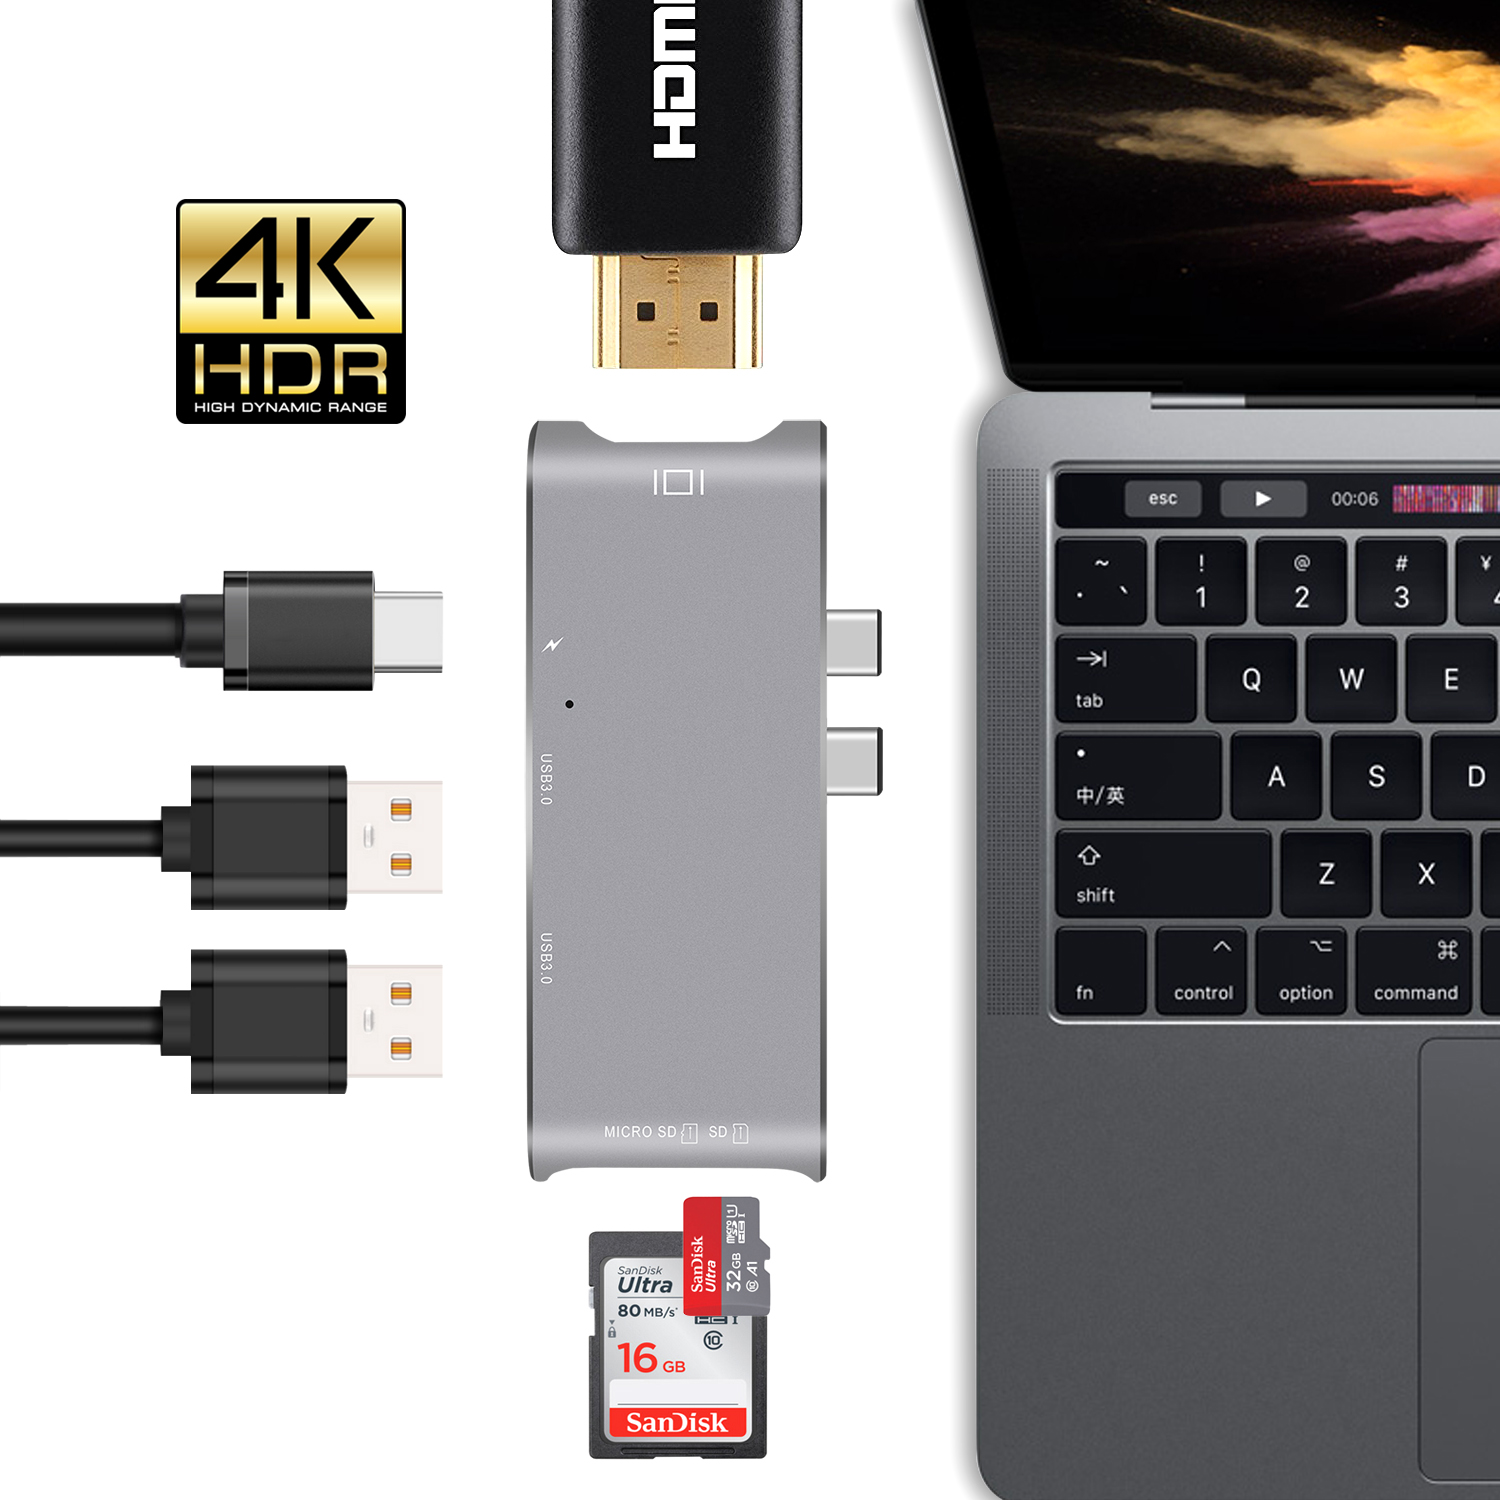 USB Type C HUB to HDMI 4k USB-C Adapter with SD/Micro SD TF Card Reader PD Power Port Combo Double USB 3.0 ports for MacBook Pro 7in1 usb c hub with pd power charging 4k hdmi video sd tf card reader gigabit ethernet adapter usb 3 0 hub combo for macbook pro